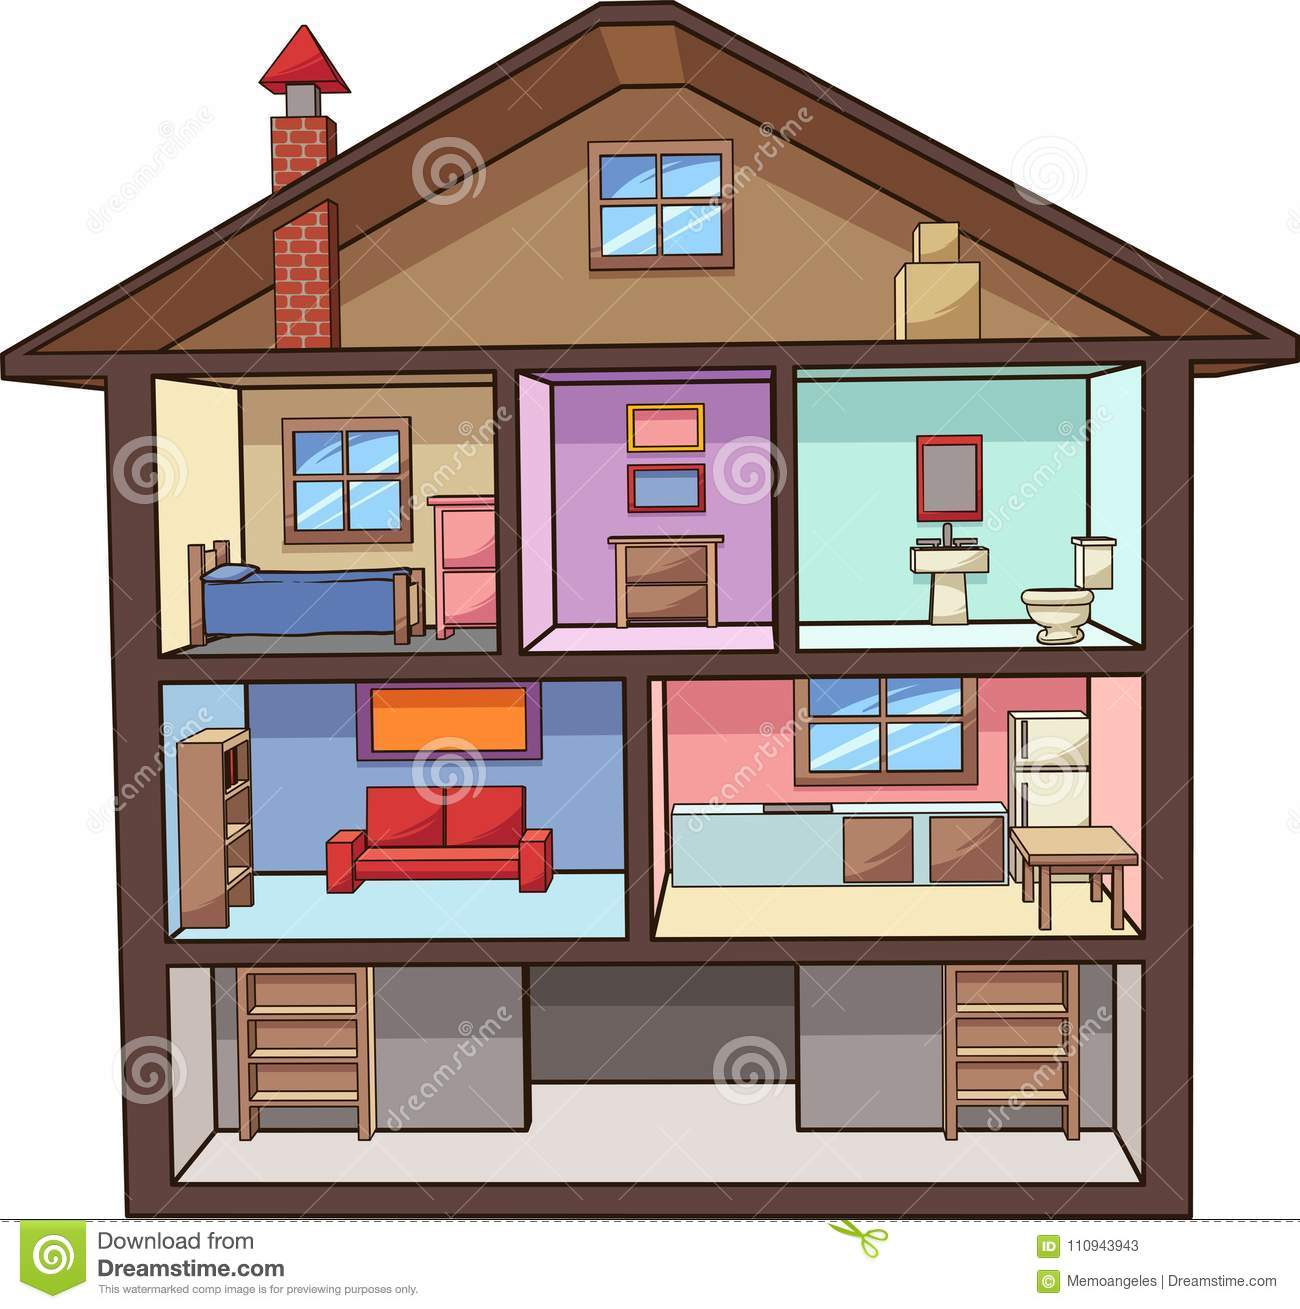 Cartoon House Stock Illustrations 220 029 Cartoon House Stock Illustrations Vectors Clipart Dreamstime